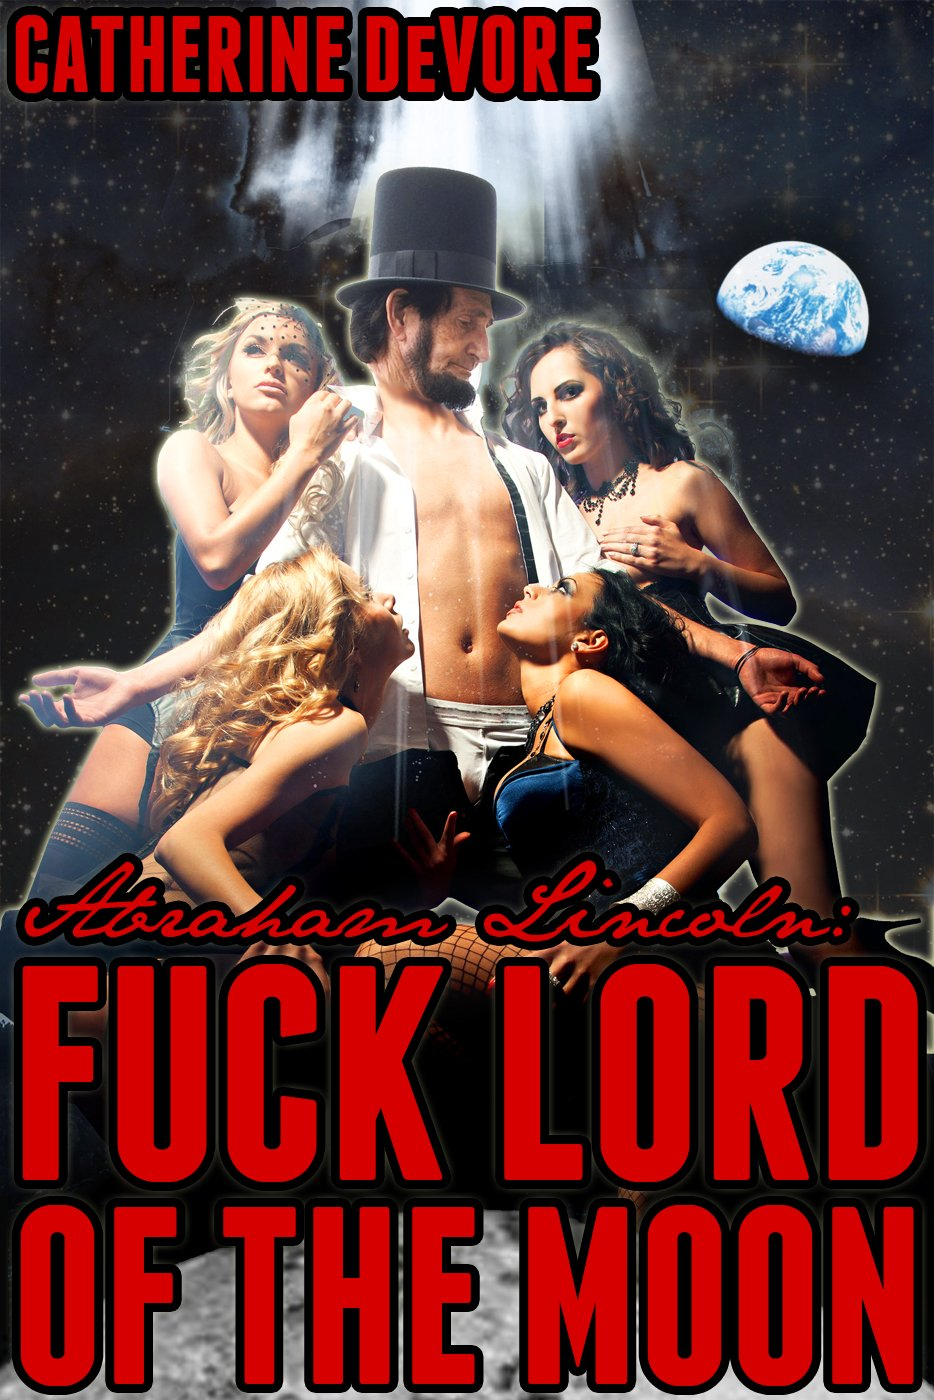 Image result for Abraham Lincoln fuck lord of the moon